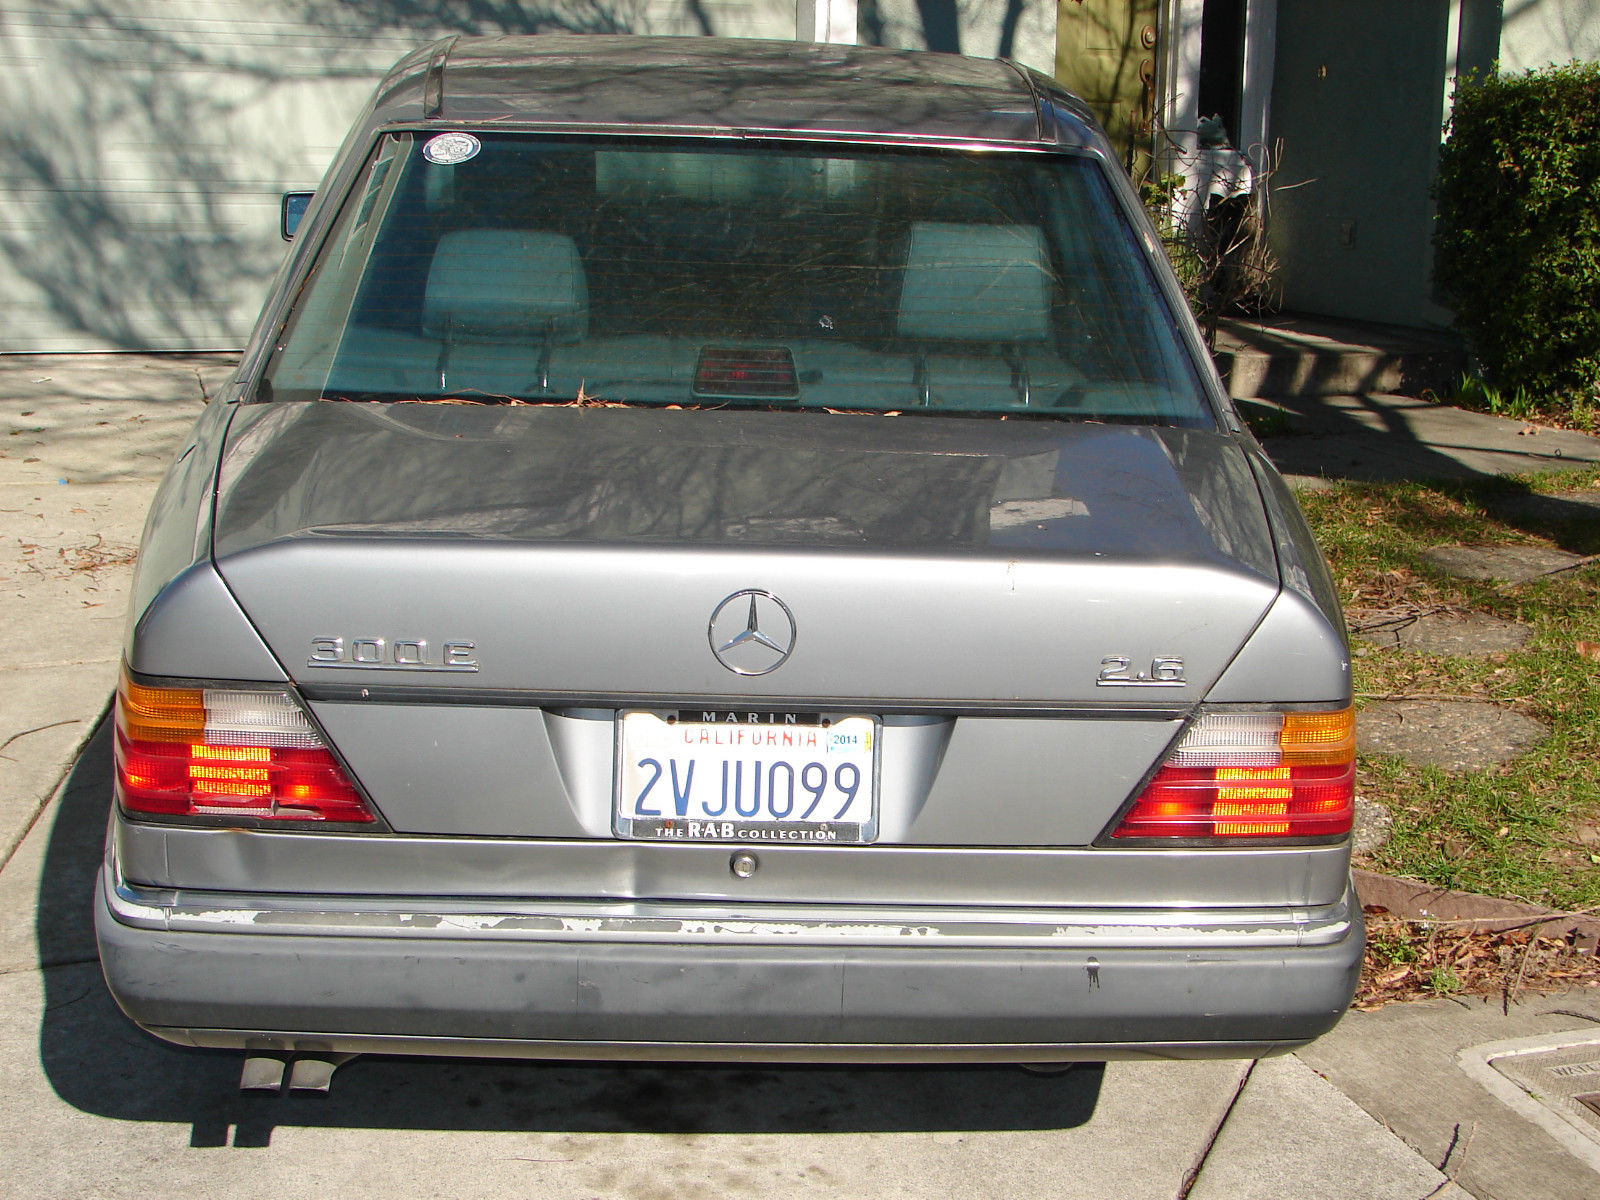 1991 mercedes benz 300e 2 6 auto 4 dr sedan sunroof for Mercedes benz auto body